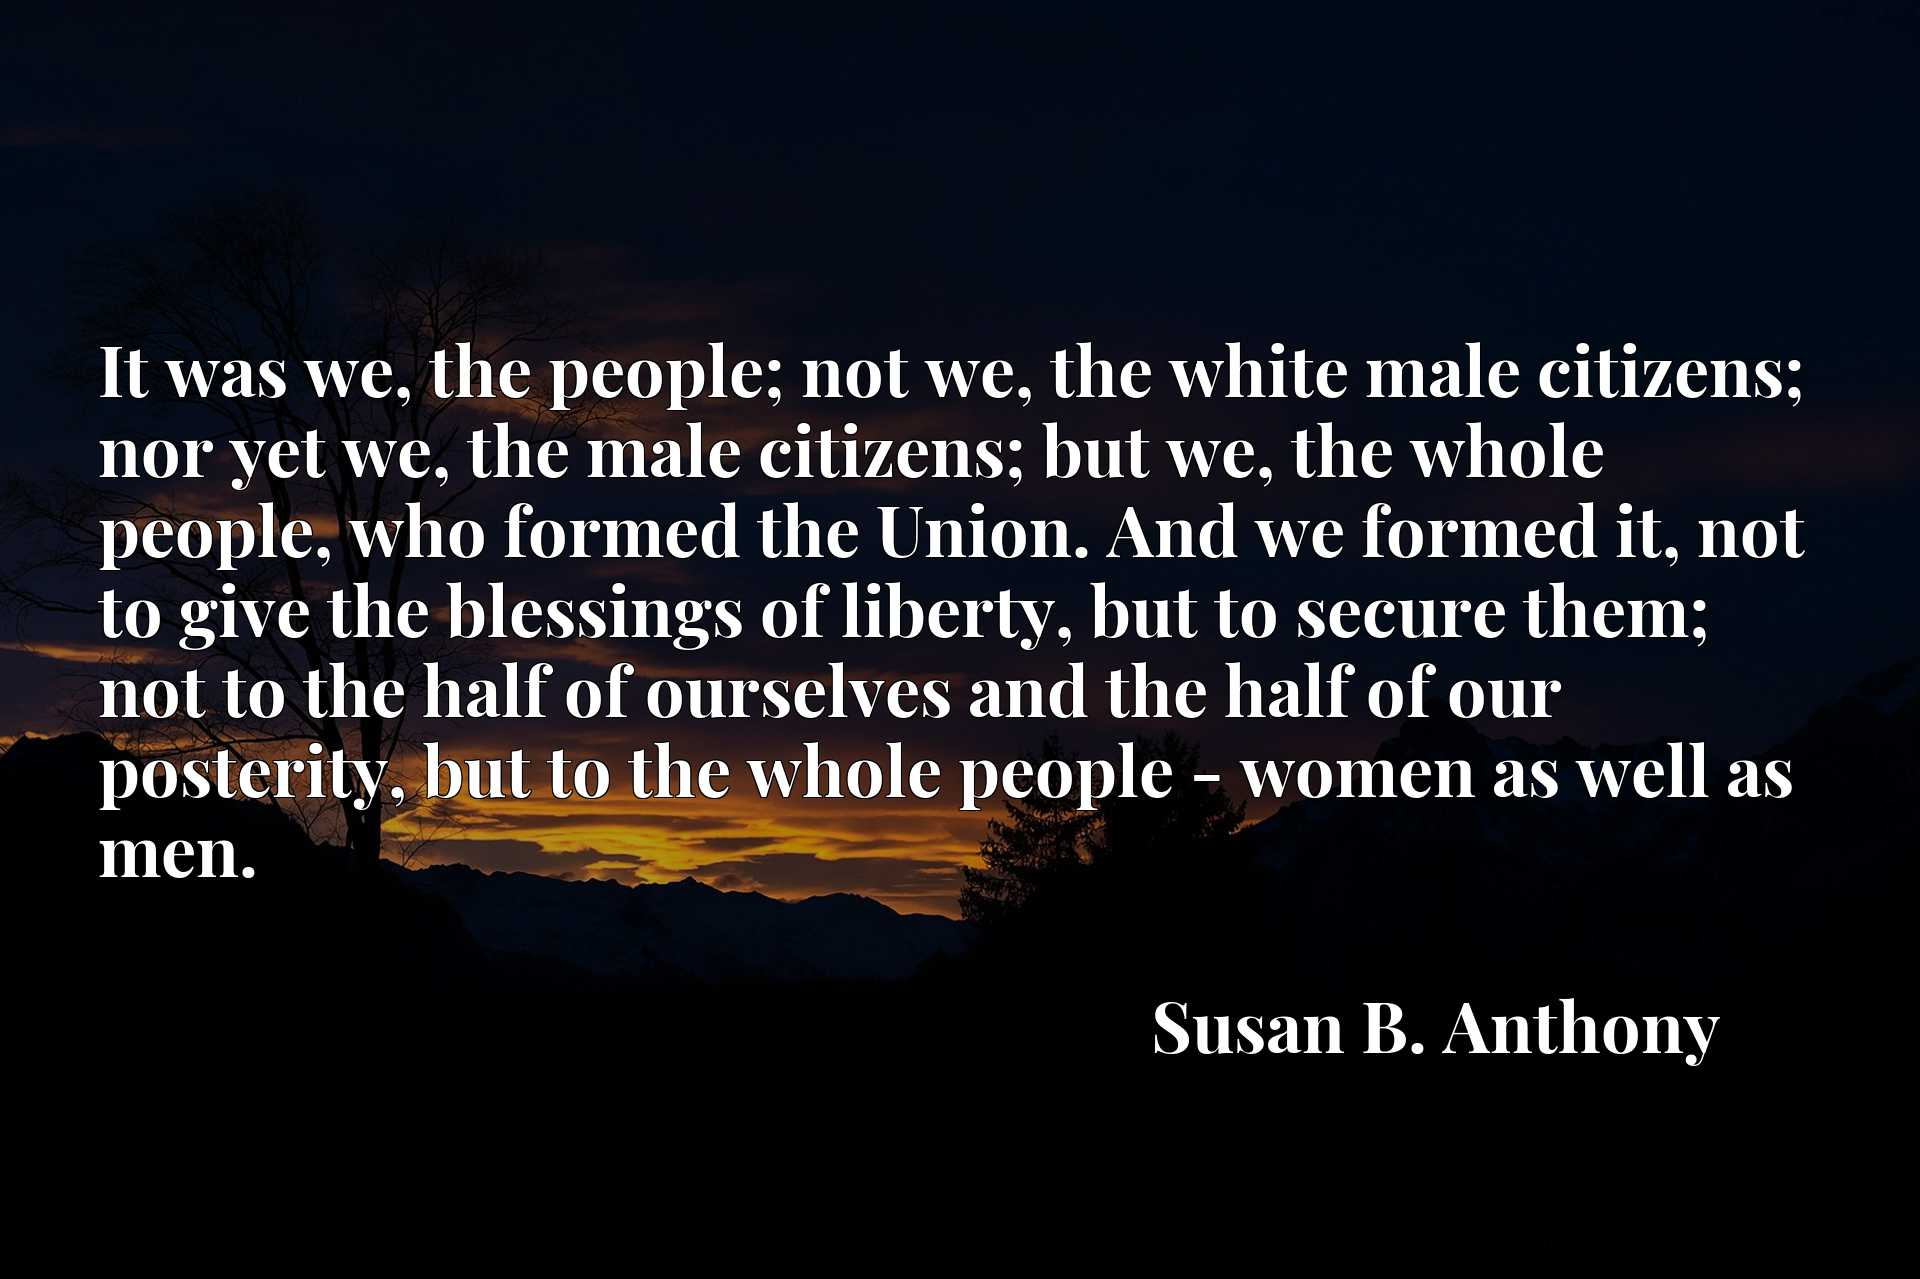 It was we, the people; not we, the white male citizens; nor yet we, the male citizens; but we, the whole people, who formed the Union. And we formed it, not to give the blessings of liberty, but to secure them; not to the half of ourselves and the half of our posterity, but to the whole people - women as well as men.